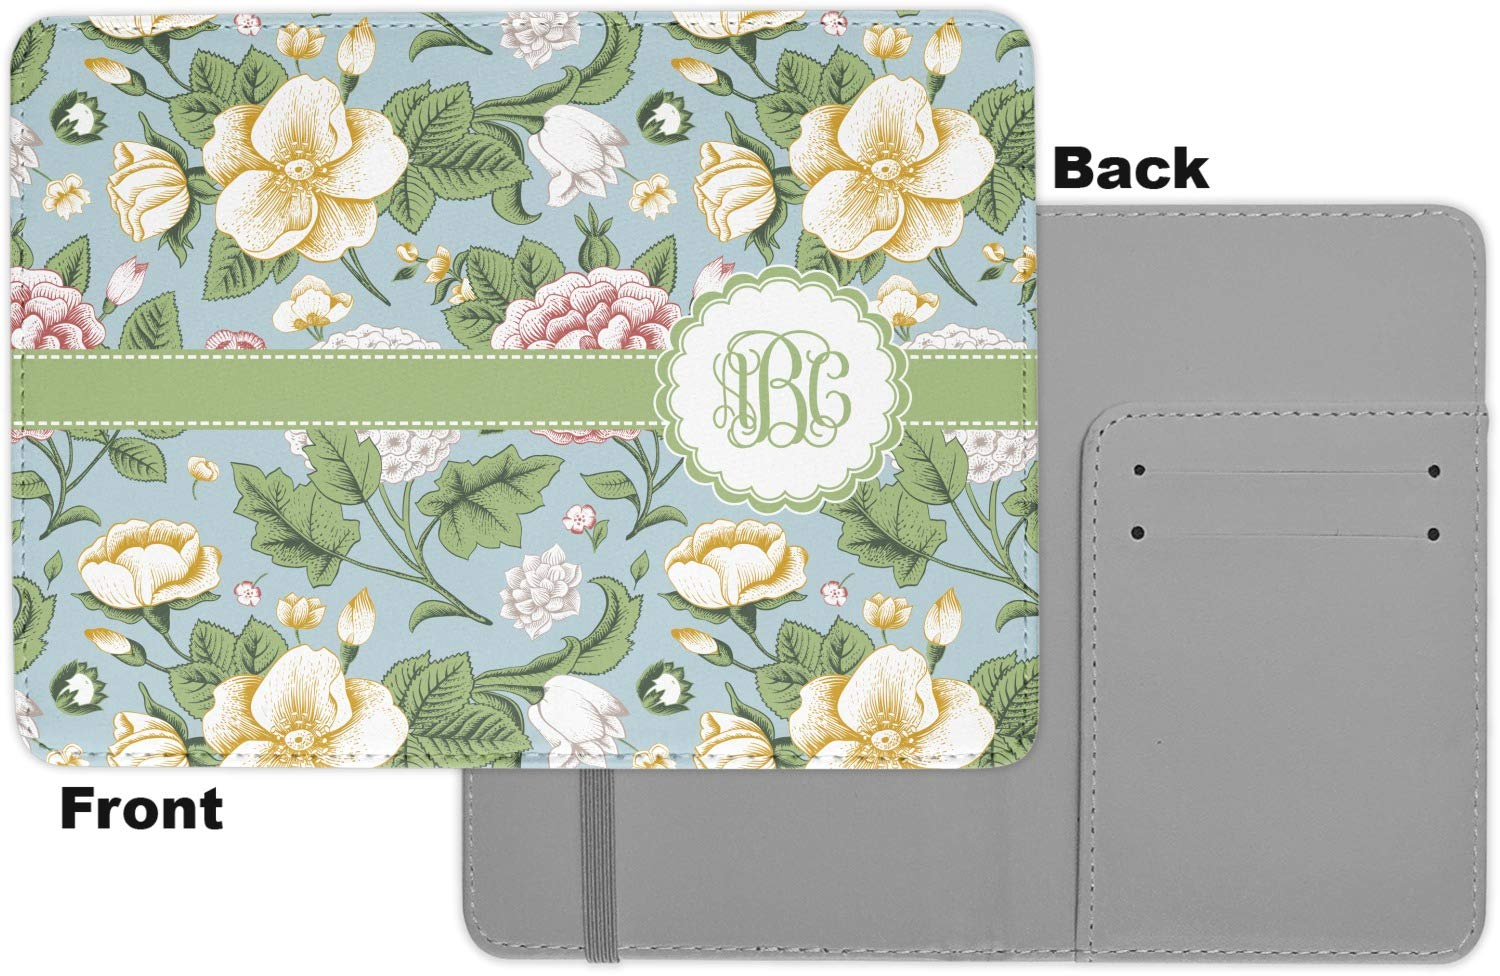 Fabric Vintage Floral Passport Holder Personalized